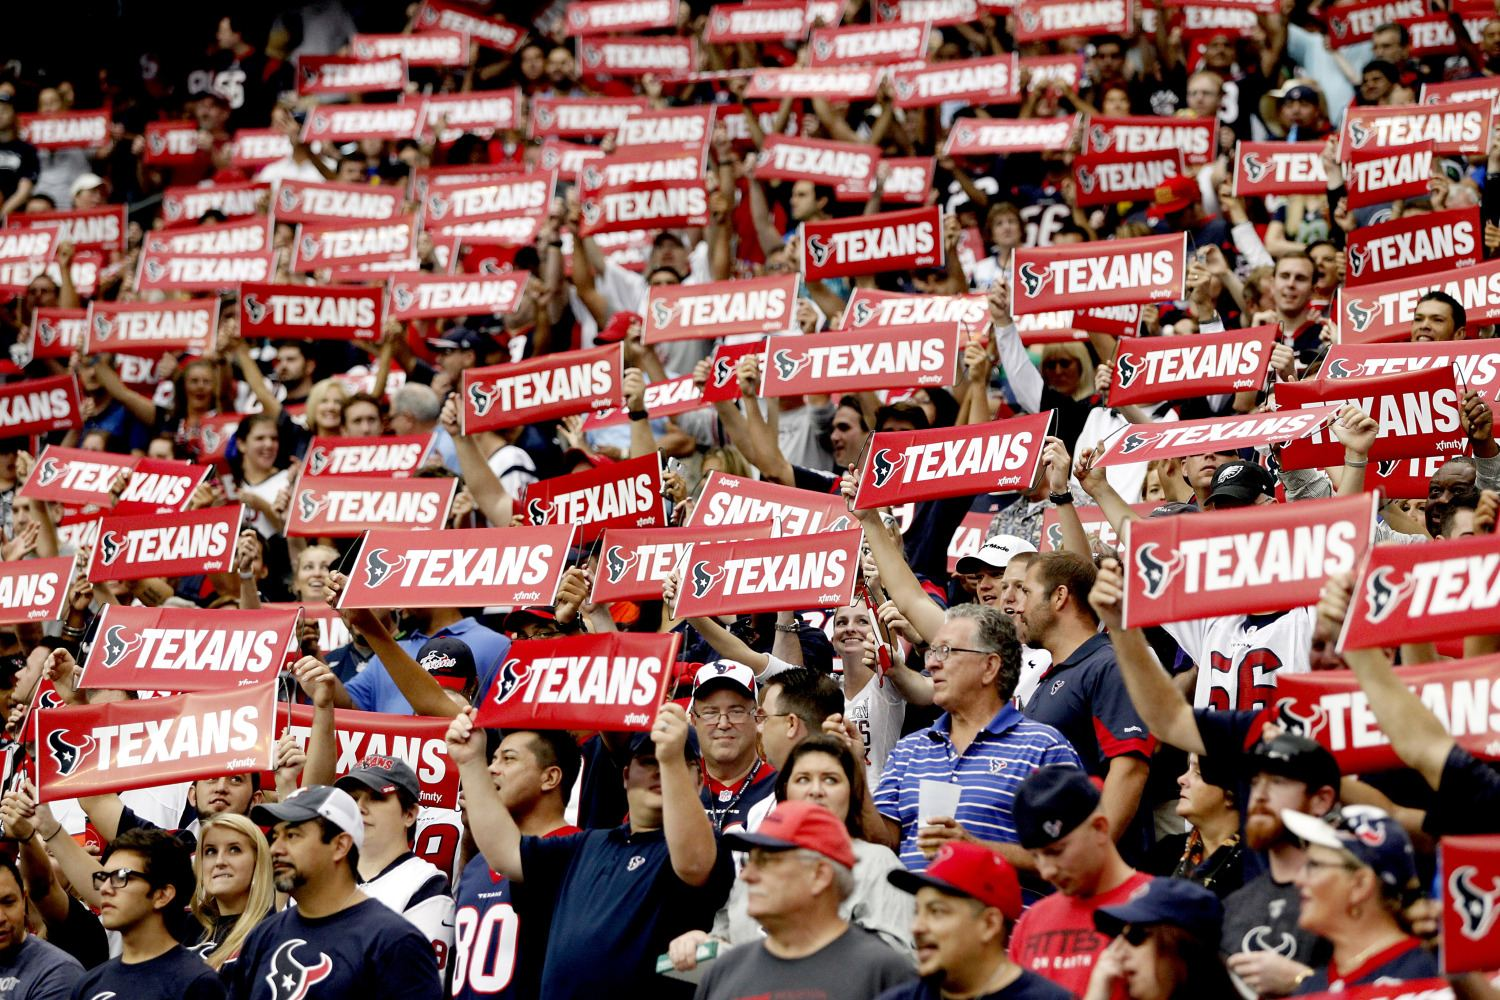 Houston Texans Fans Don't Deserve Tony Romo